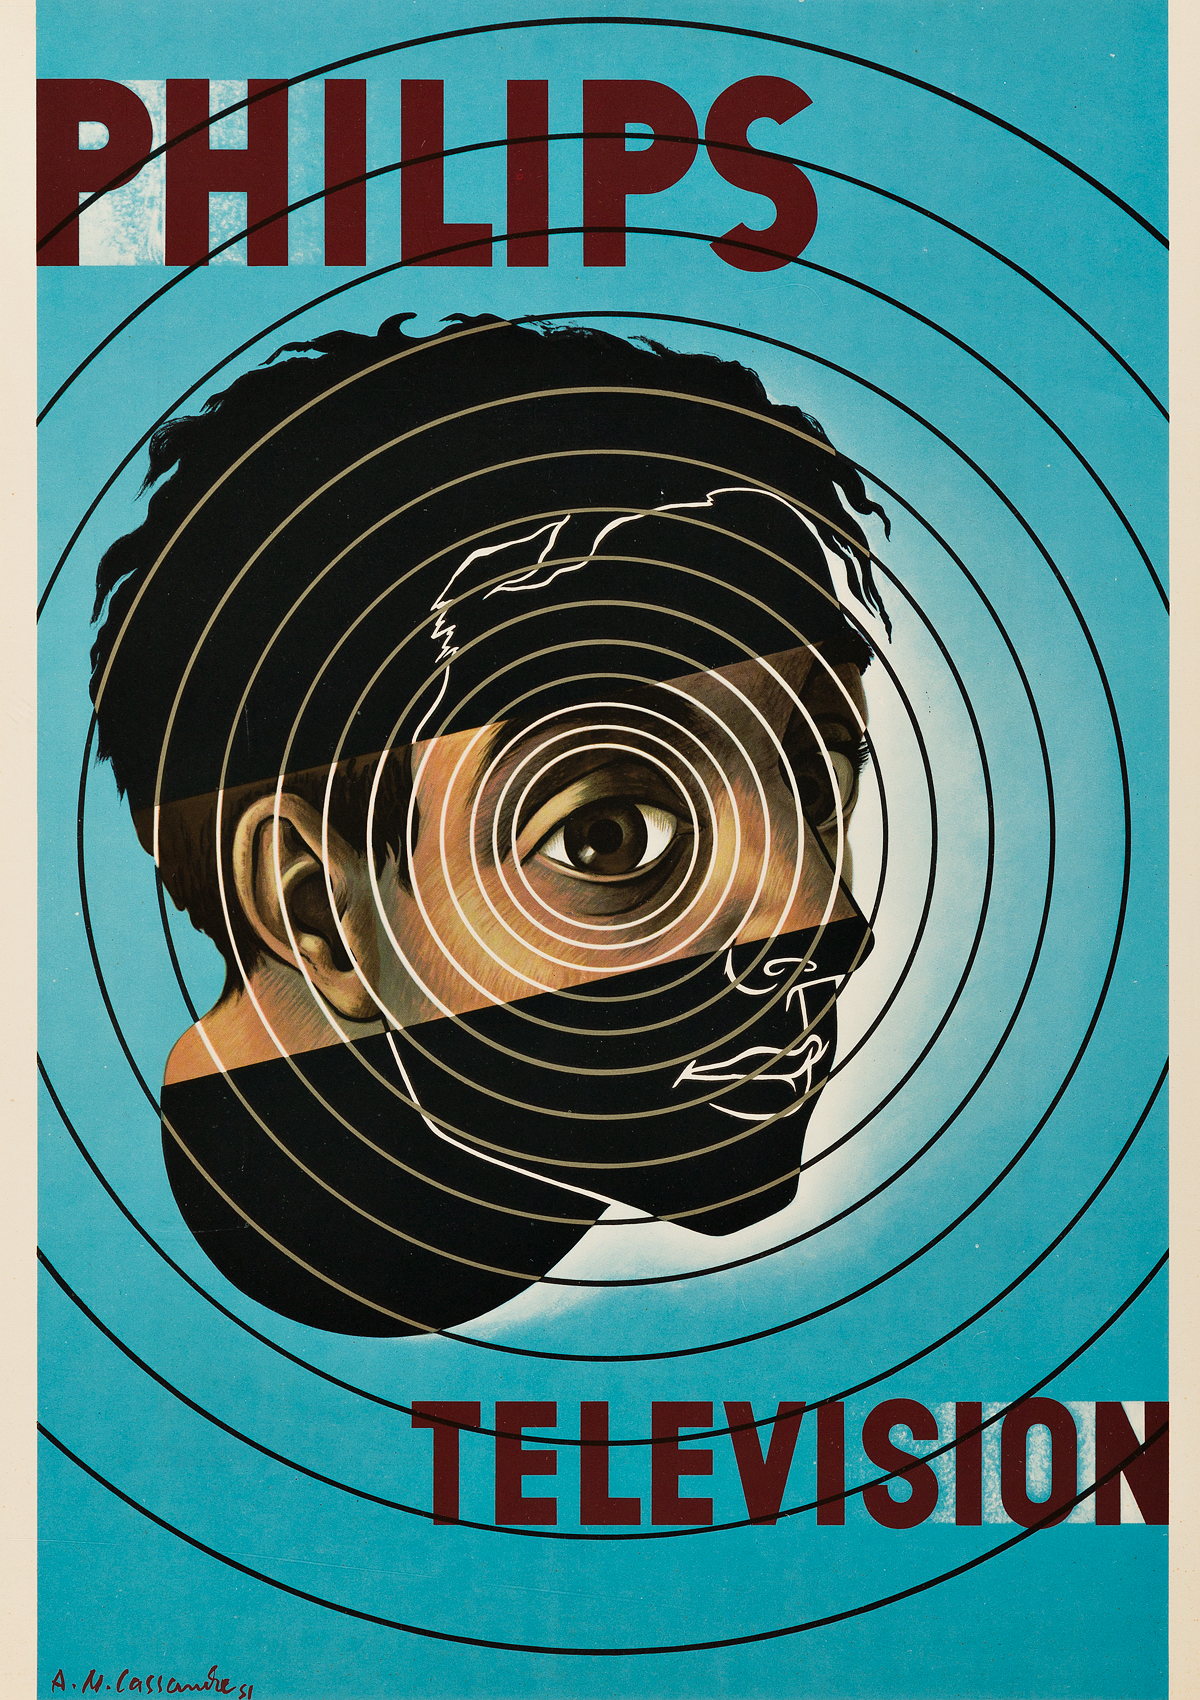 ADOLPHE-MOURON-CASSANDRE-(1901-1968)-PHILIPS--TELEVISION-195